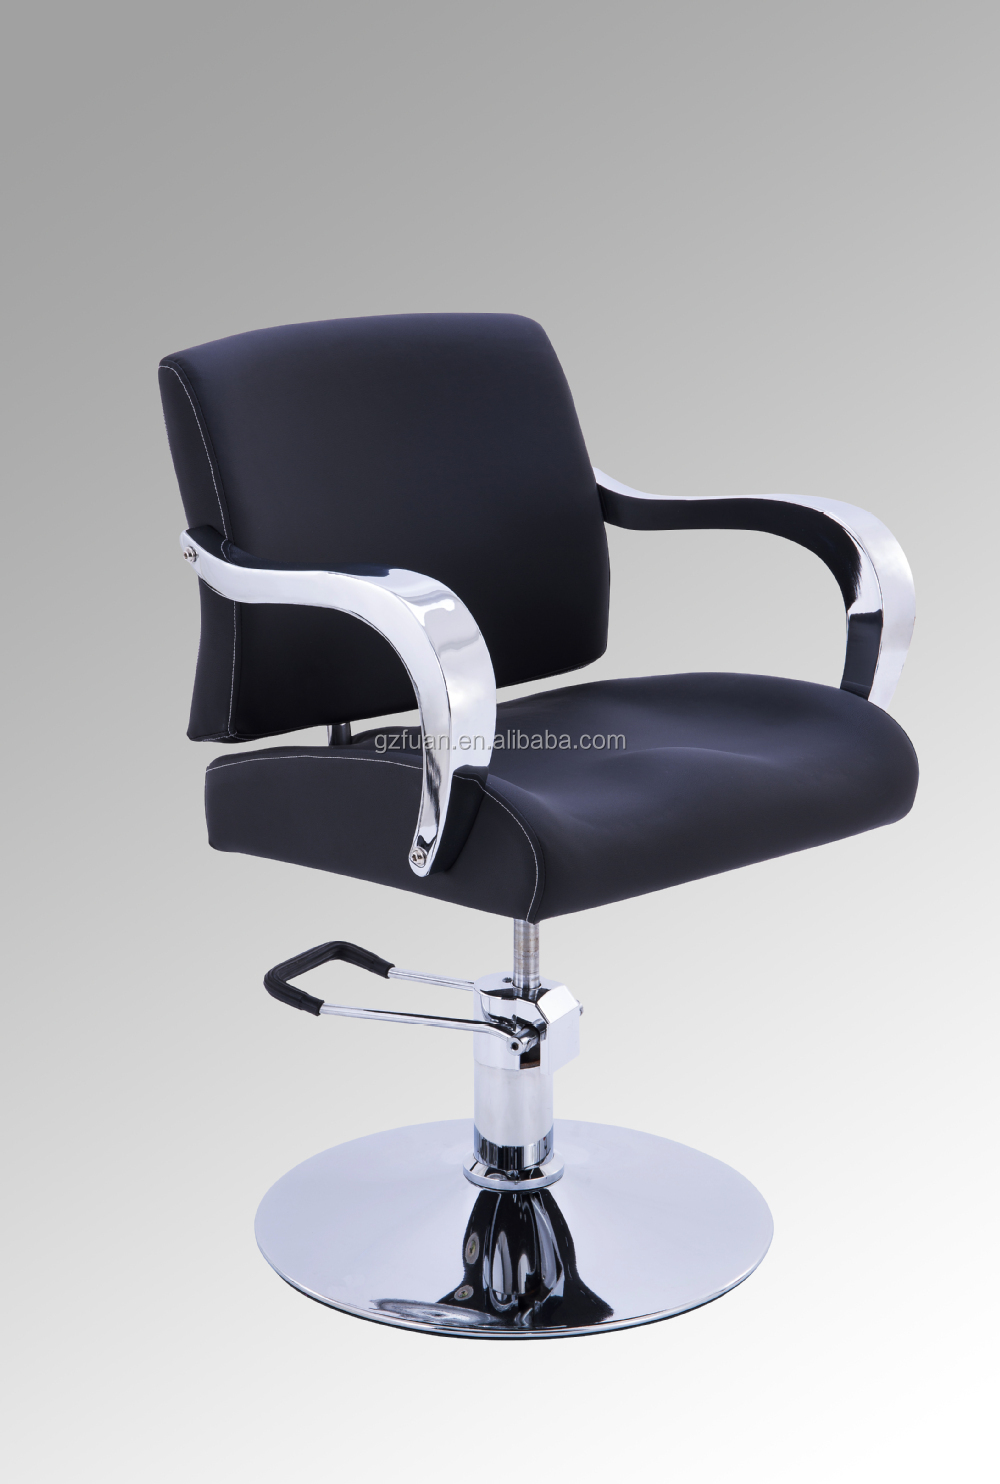 China beauty mingyi professional antique styled styling chair used cutting hair salon chairs for - Used salon furniture for sale ...